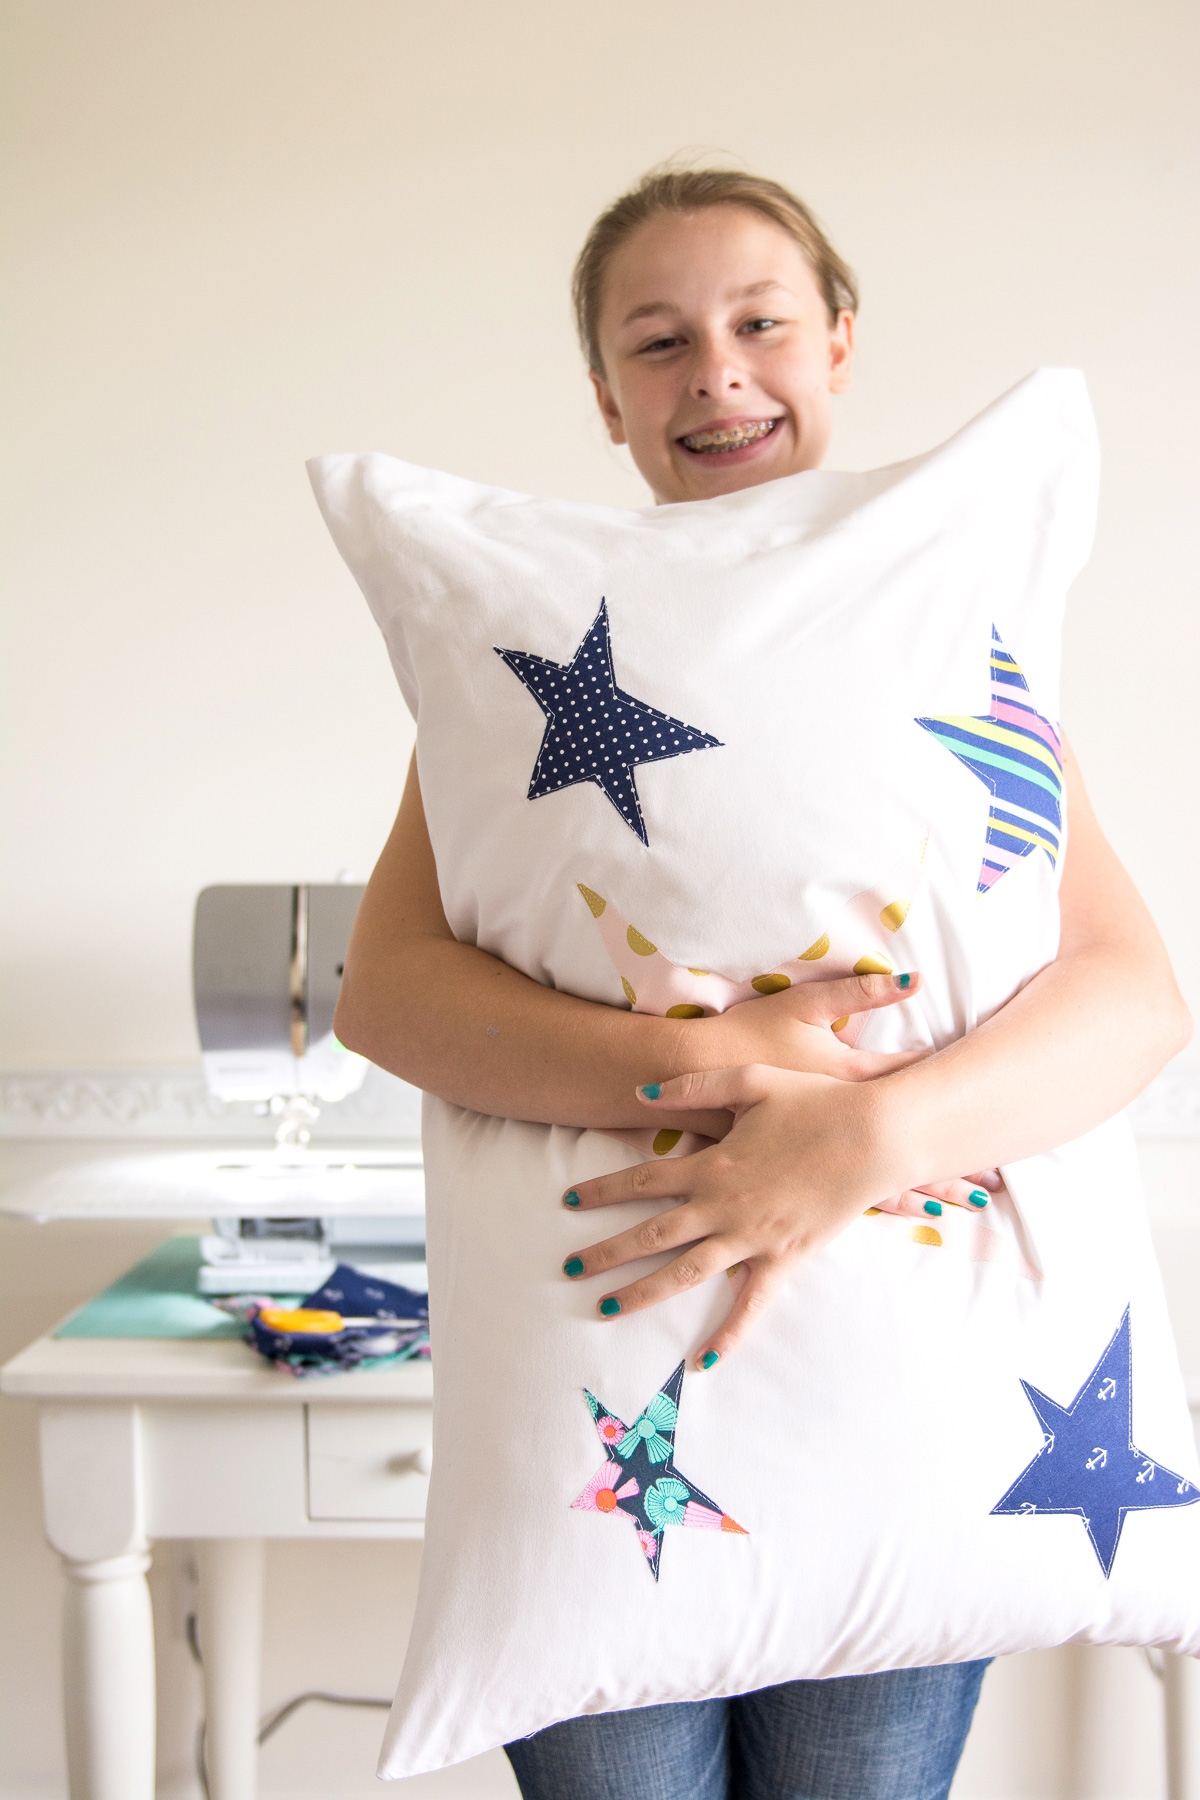 Sewing Project Fabric Basket Tutorial: Summer Pillow Sewing Project For Kids